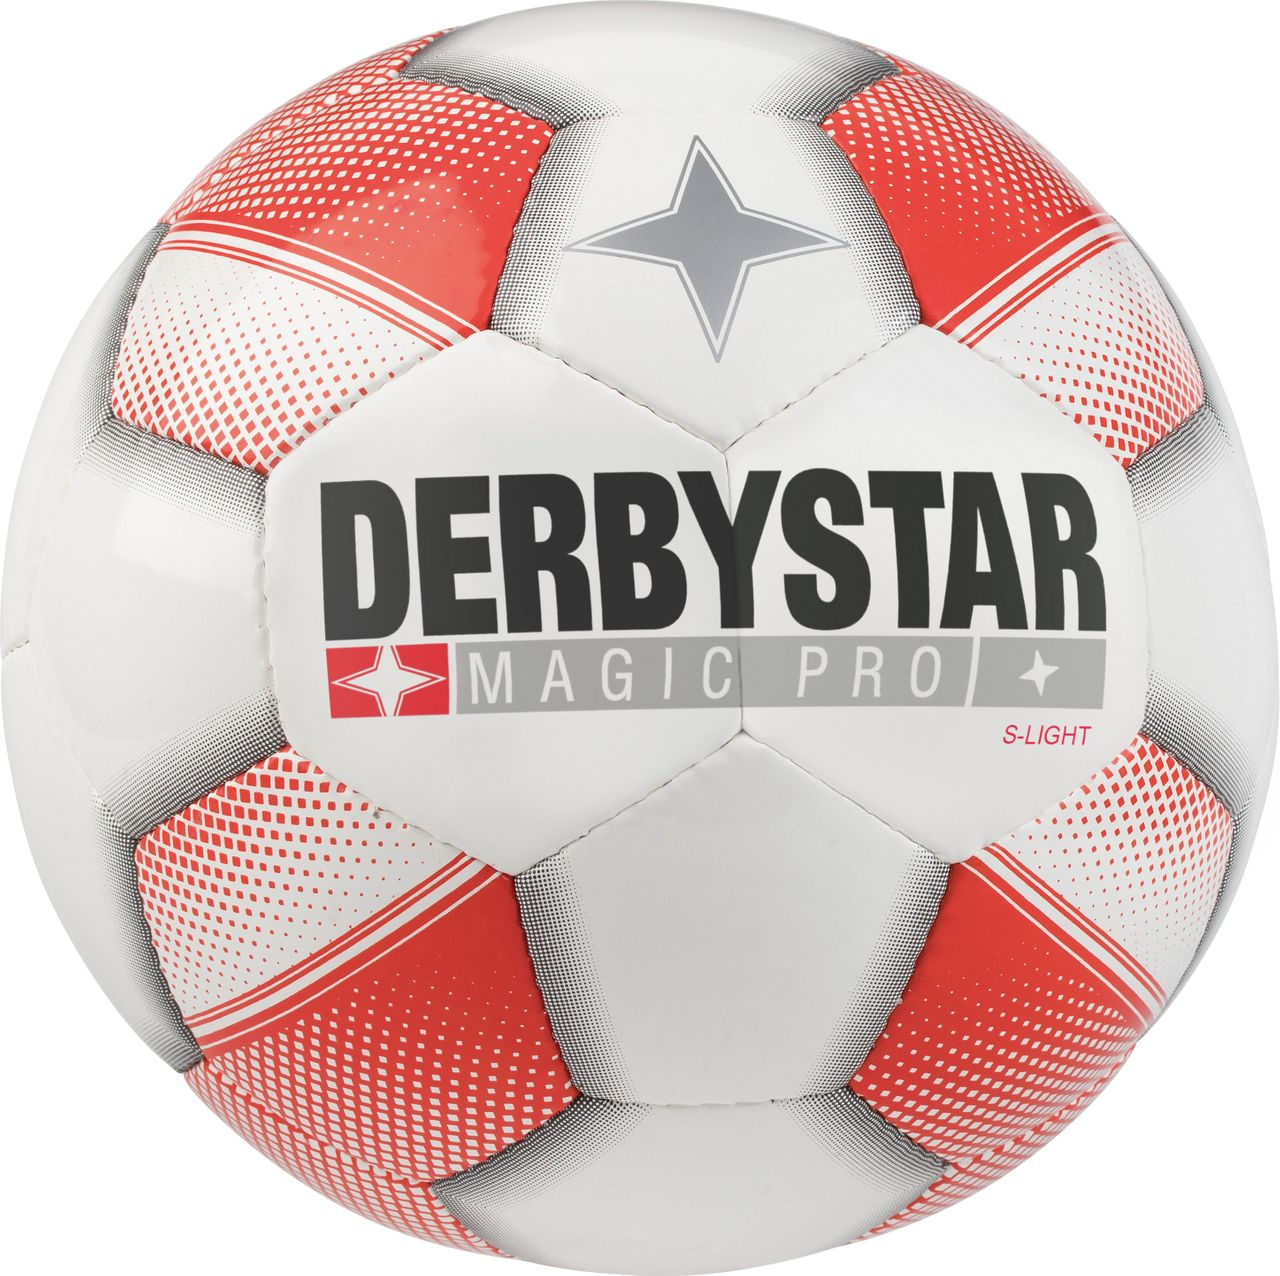 DERBYSTAR Jugendball - MAGIC PRO S-LIGHT